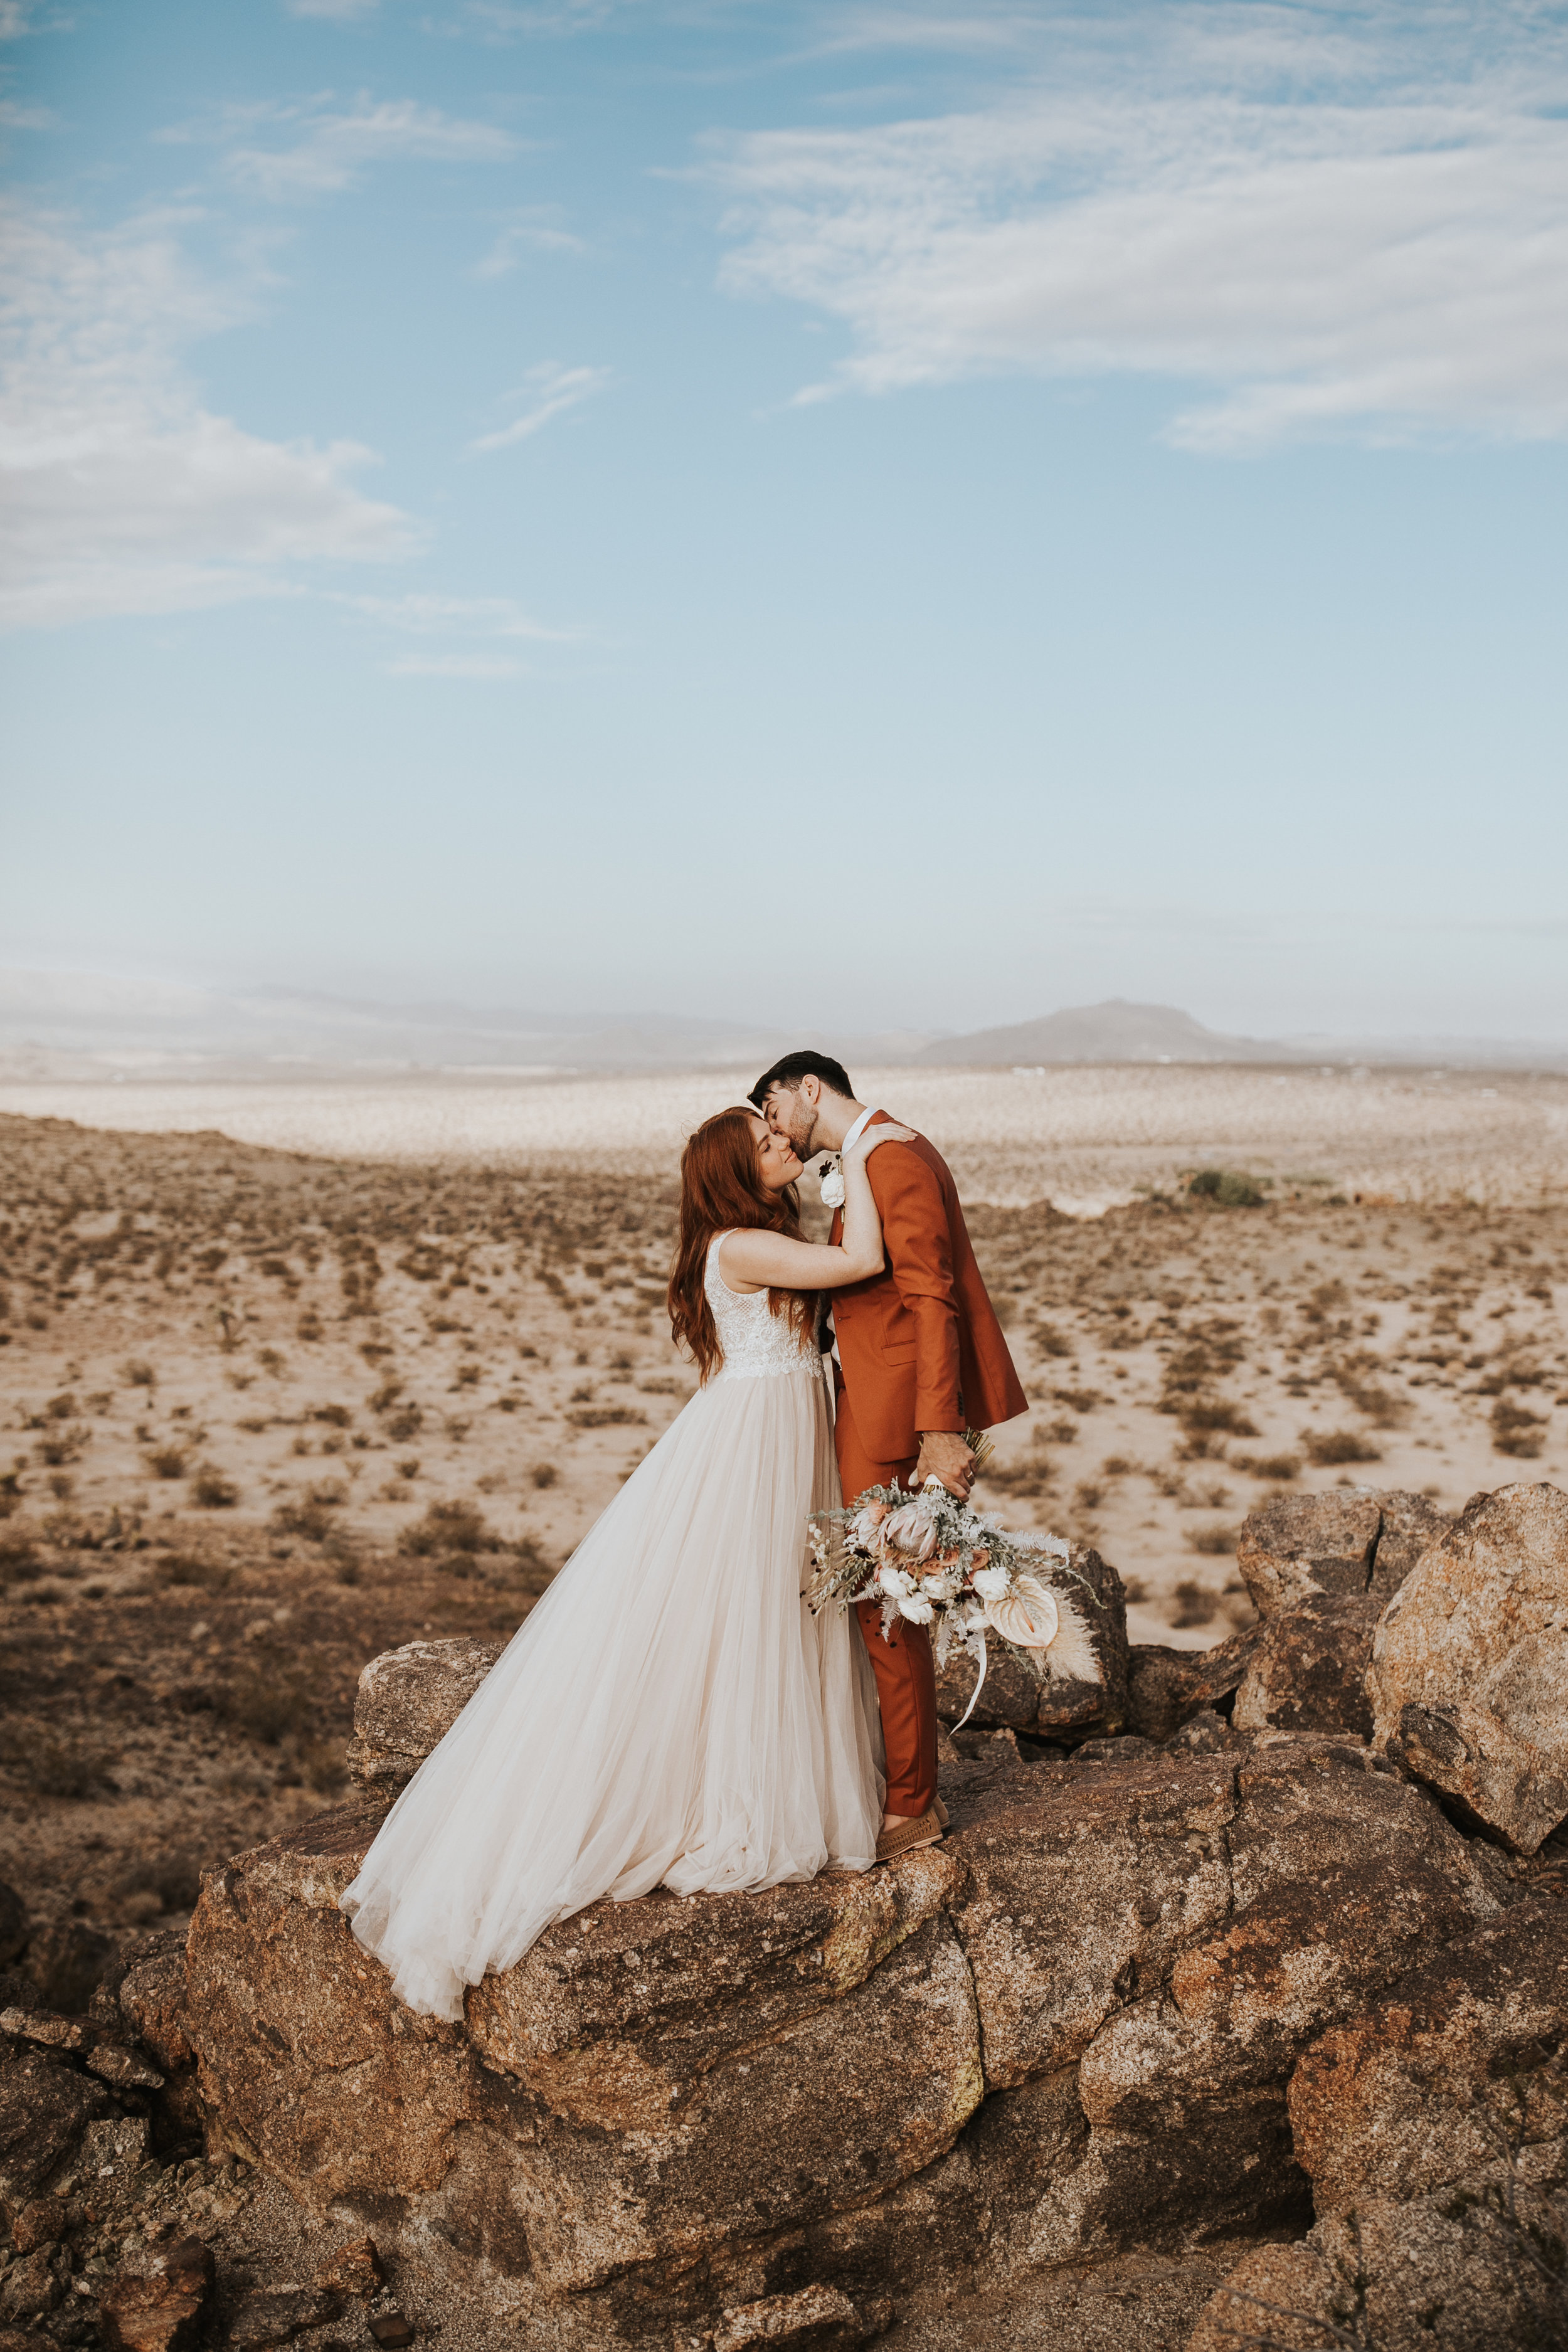 Emilie and Lucas- Photo by Wild Heart Visuals (Nicole Little)